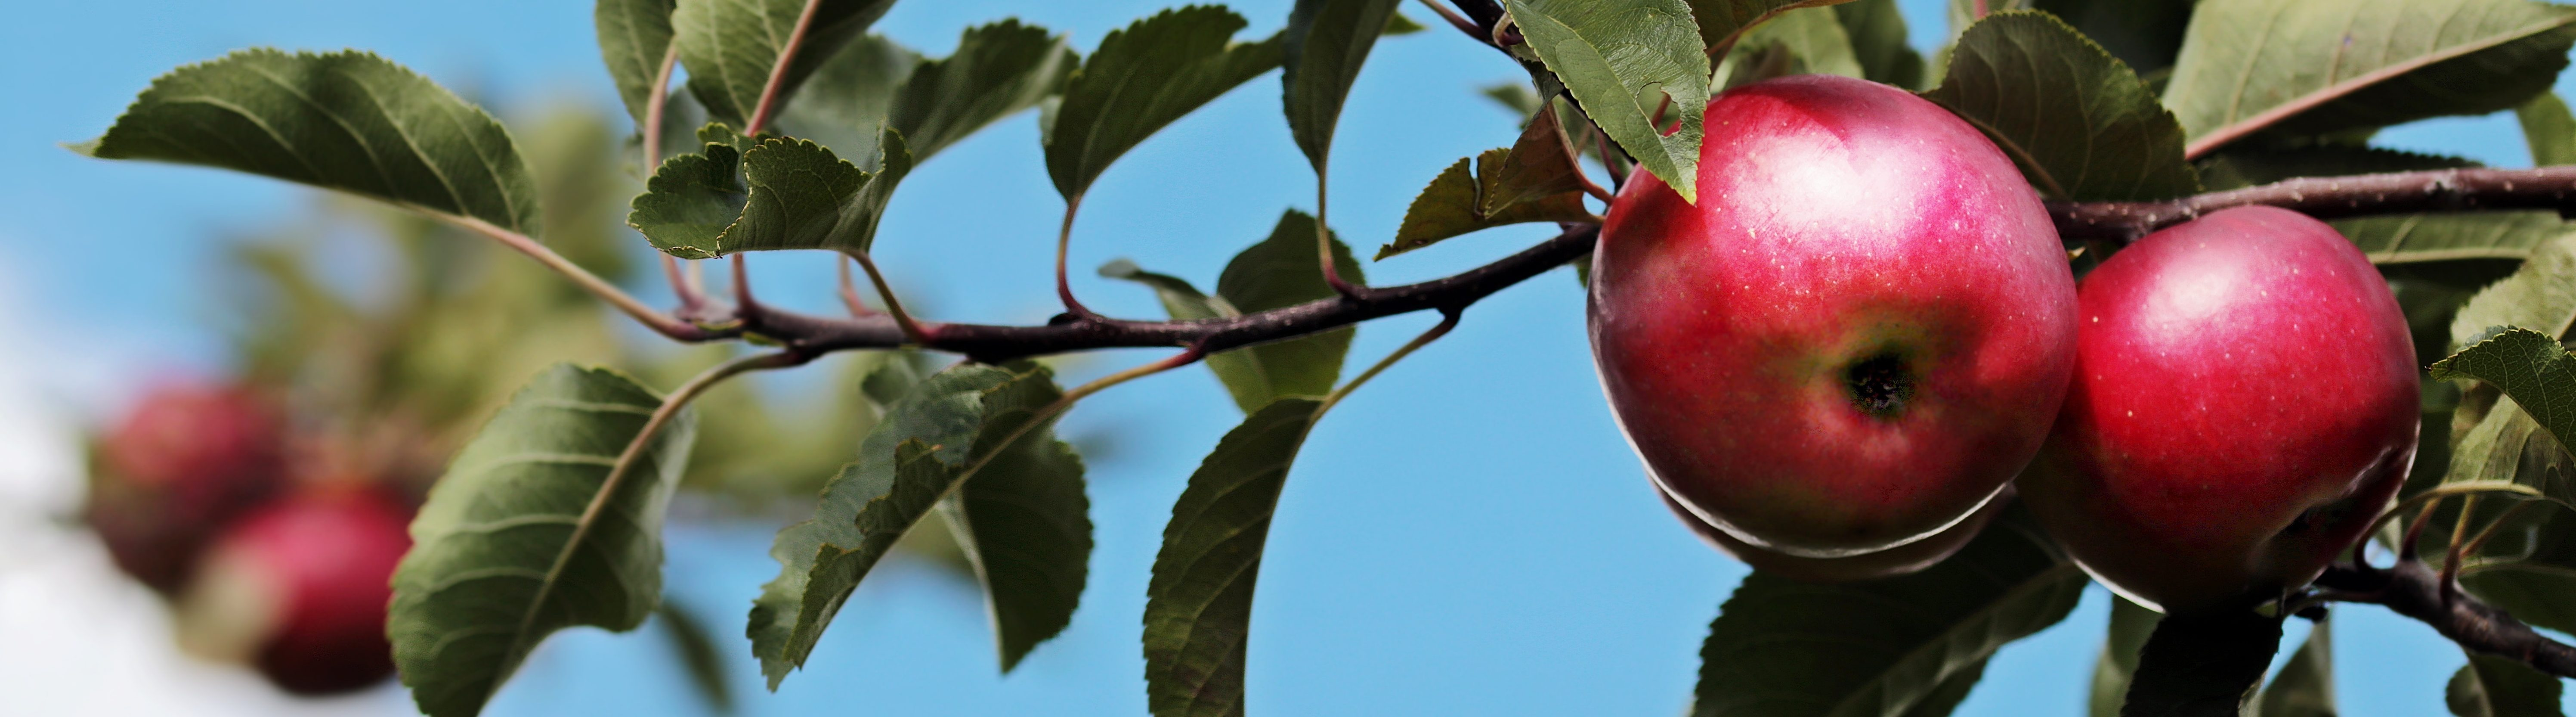 Close-up of red apples at a tree with the blue sky behind.